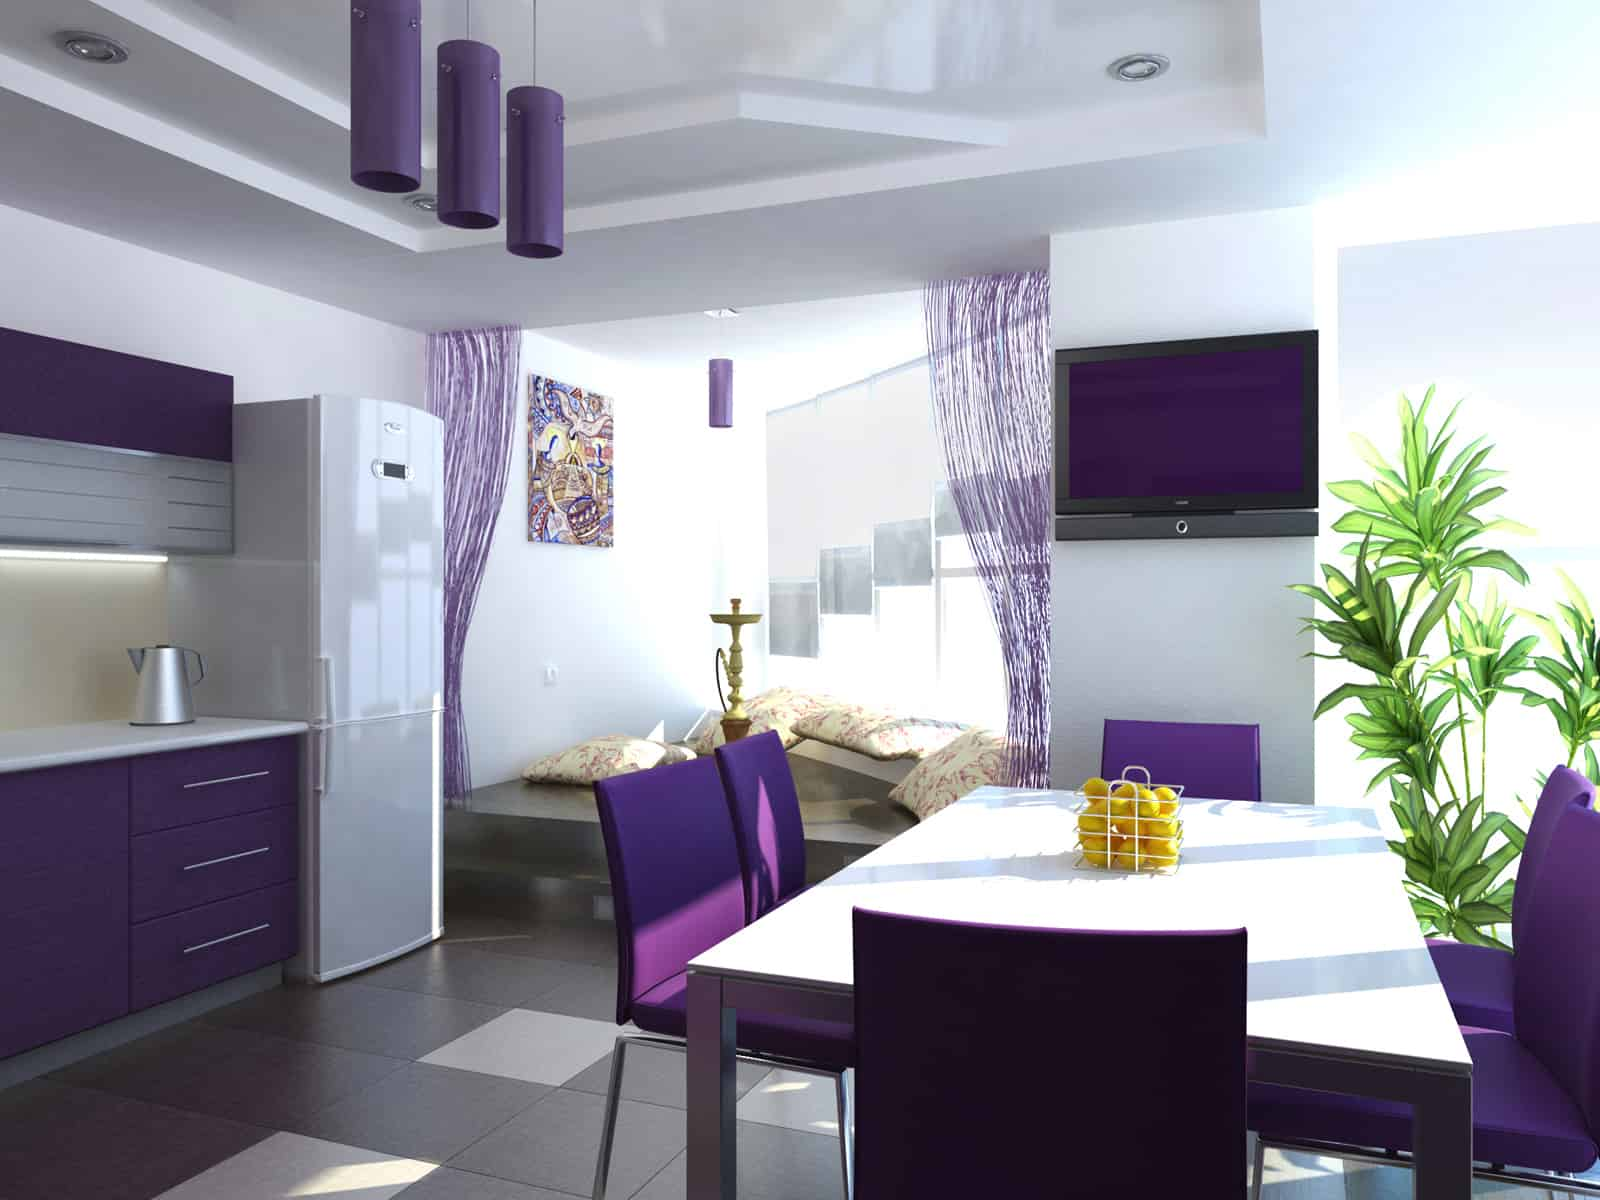 Interior design trends 2017 purple kitchen for Interior design decoration tips